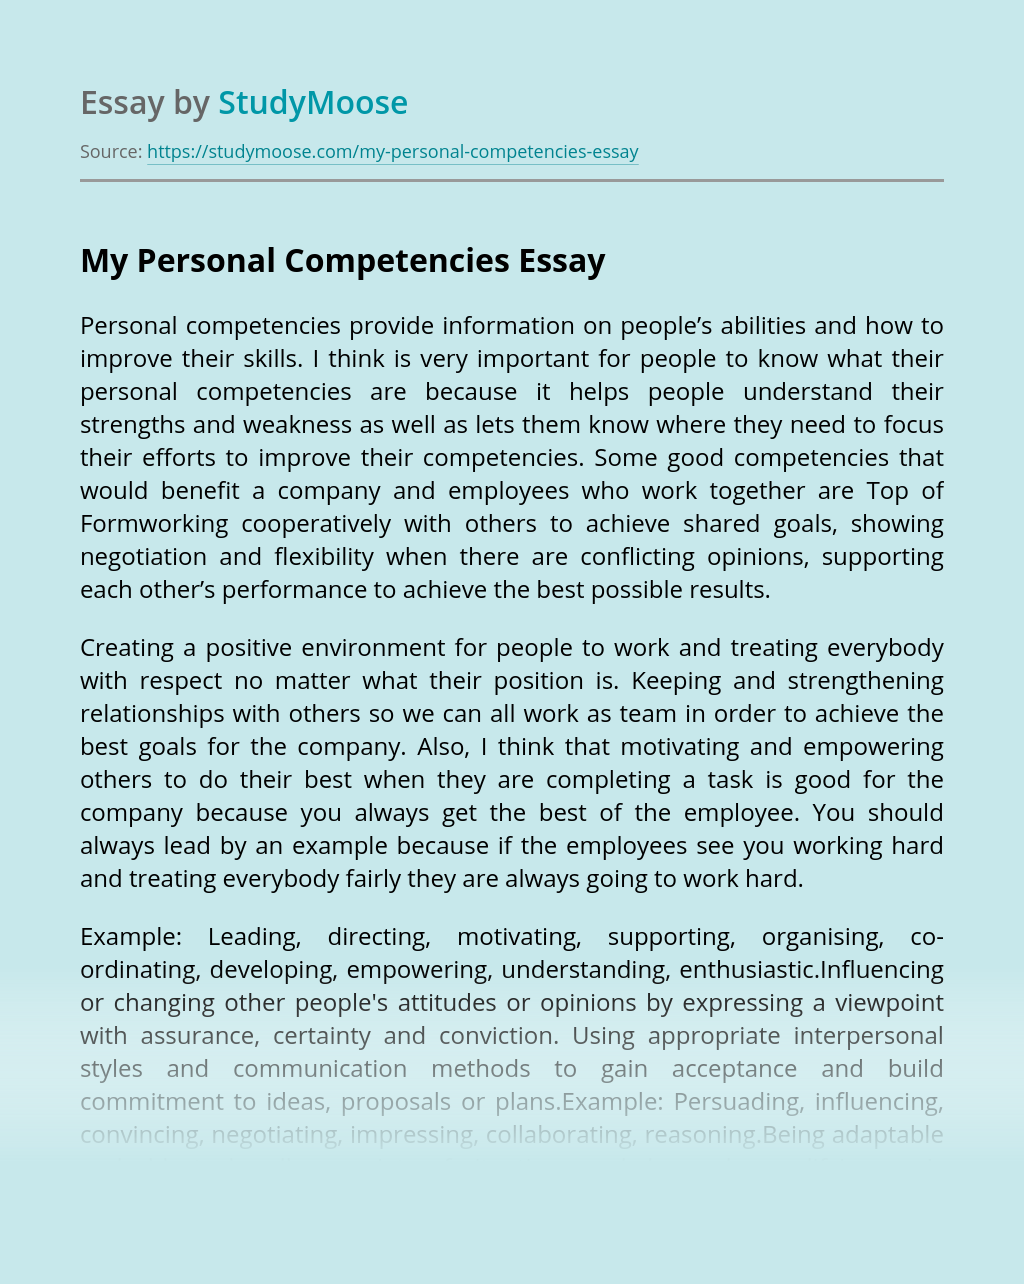 My Personal Competencies